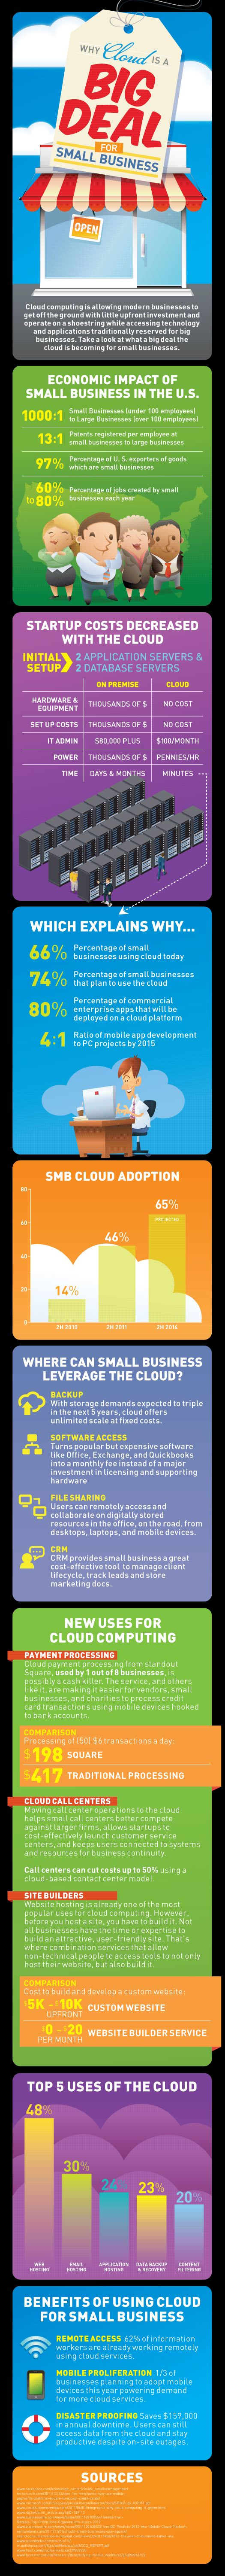 Cloud Computing for Small Business: A Big Deal!  Cloud computing is really a big deal for small businesses as it can offer them the same access to resources as big businesses. Consider this survey result: 66 percent of small business has already using the cloud today, and 74 percent are planning to adopt the cloud in the near future.